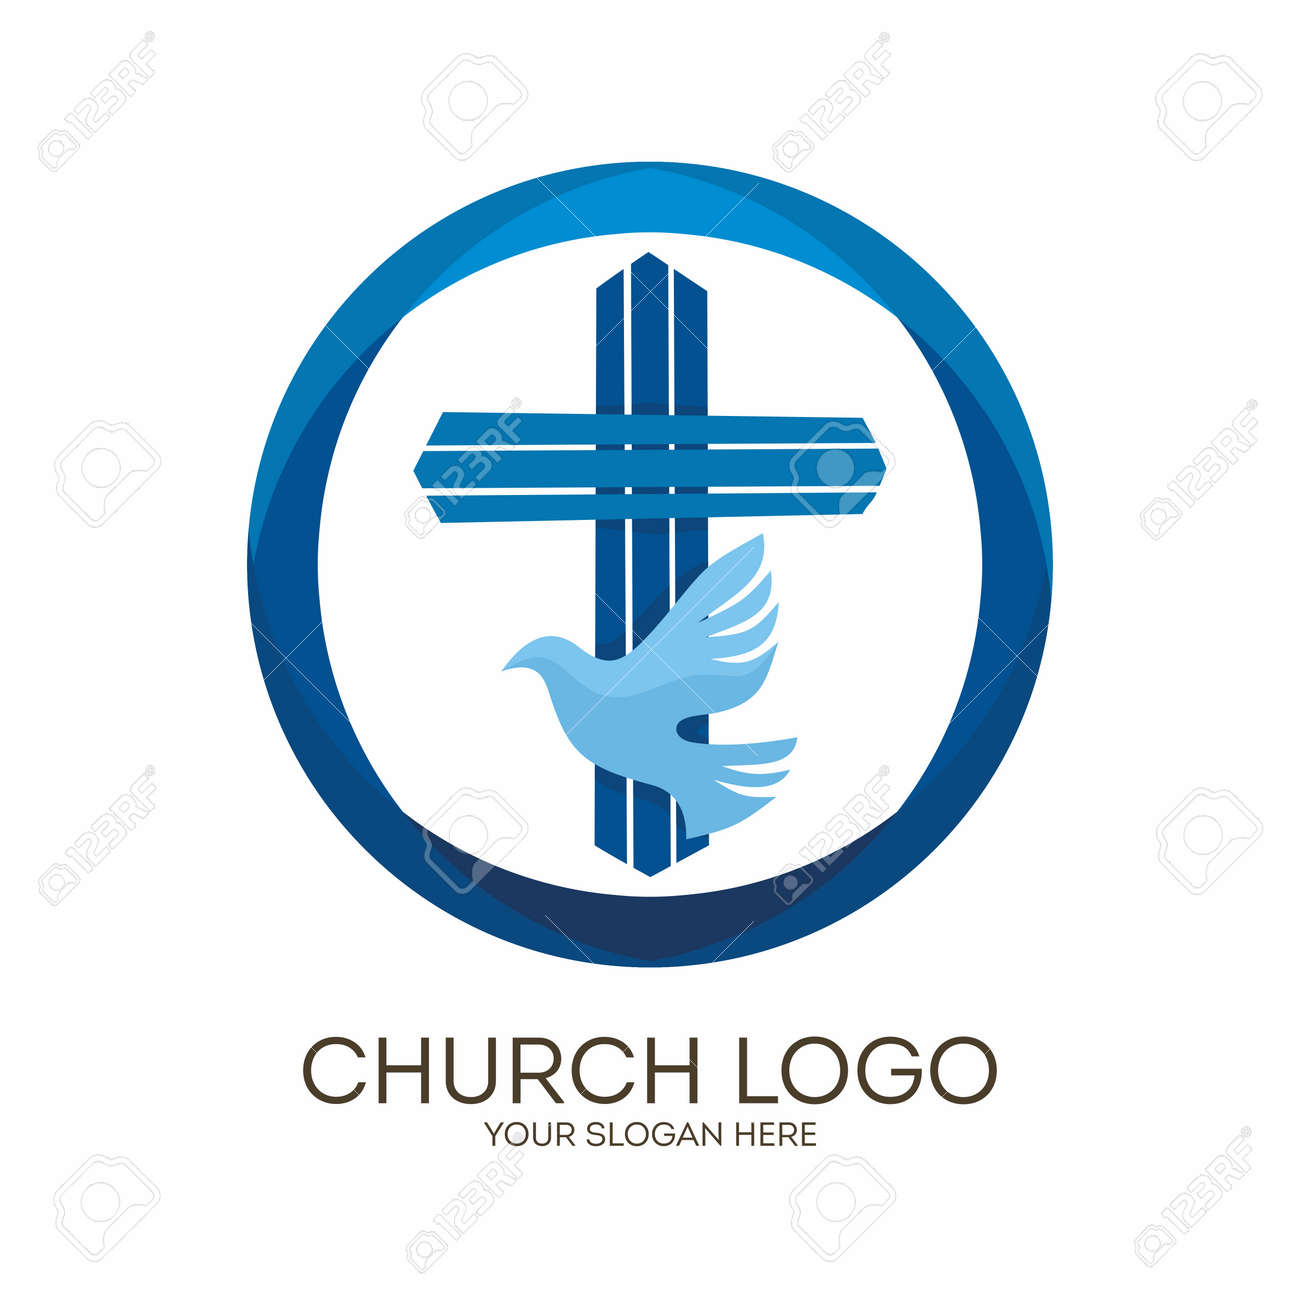 Church logo christian symbols jesus cross and dove the holy church logo christian symbols jesus cross and dove the holy spirit altavistaventures Choice Image